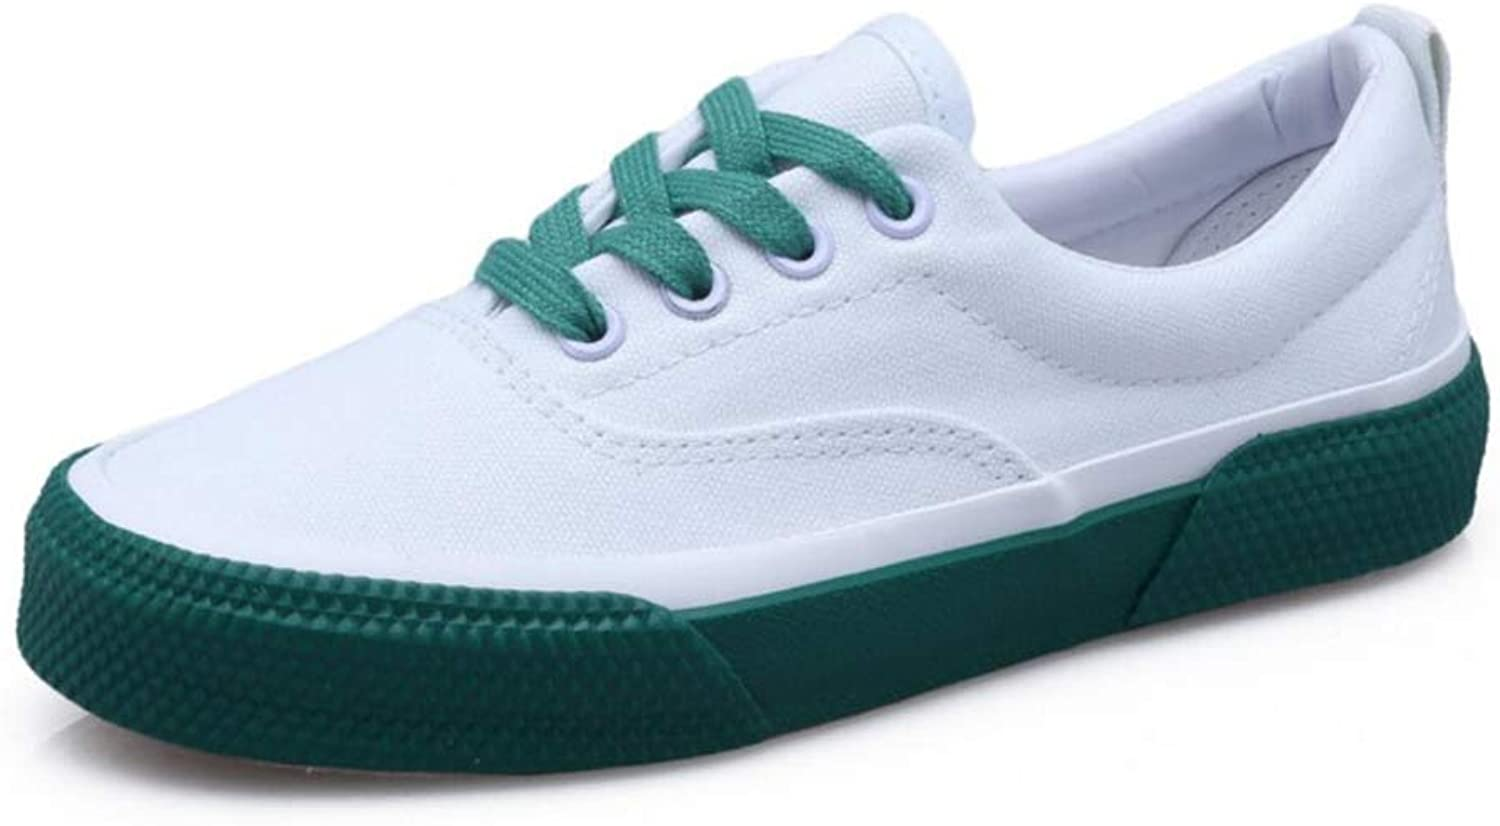 Women's Low Top Classic Casual Canvas Fashion shoes Trainers Sneakers